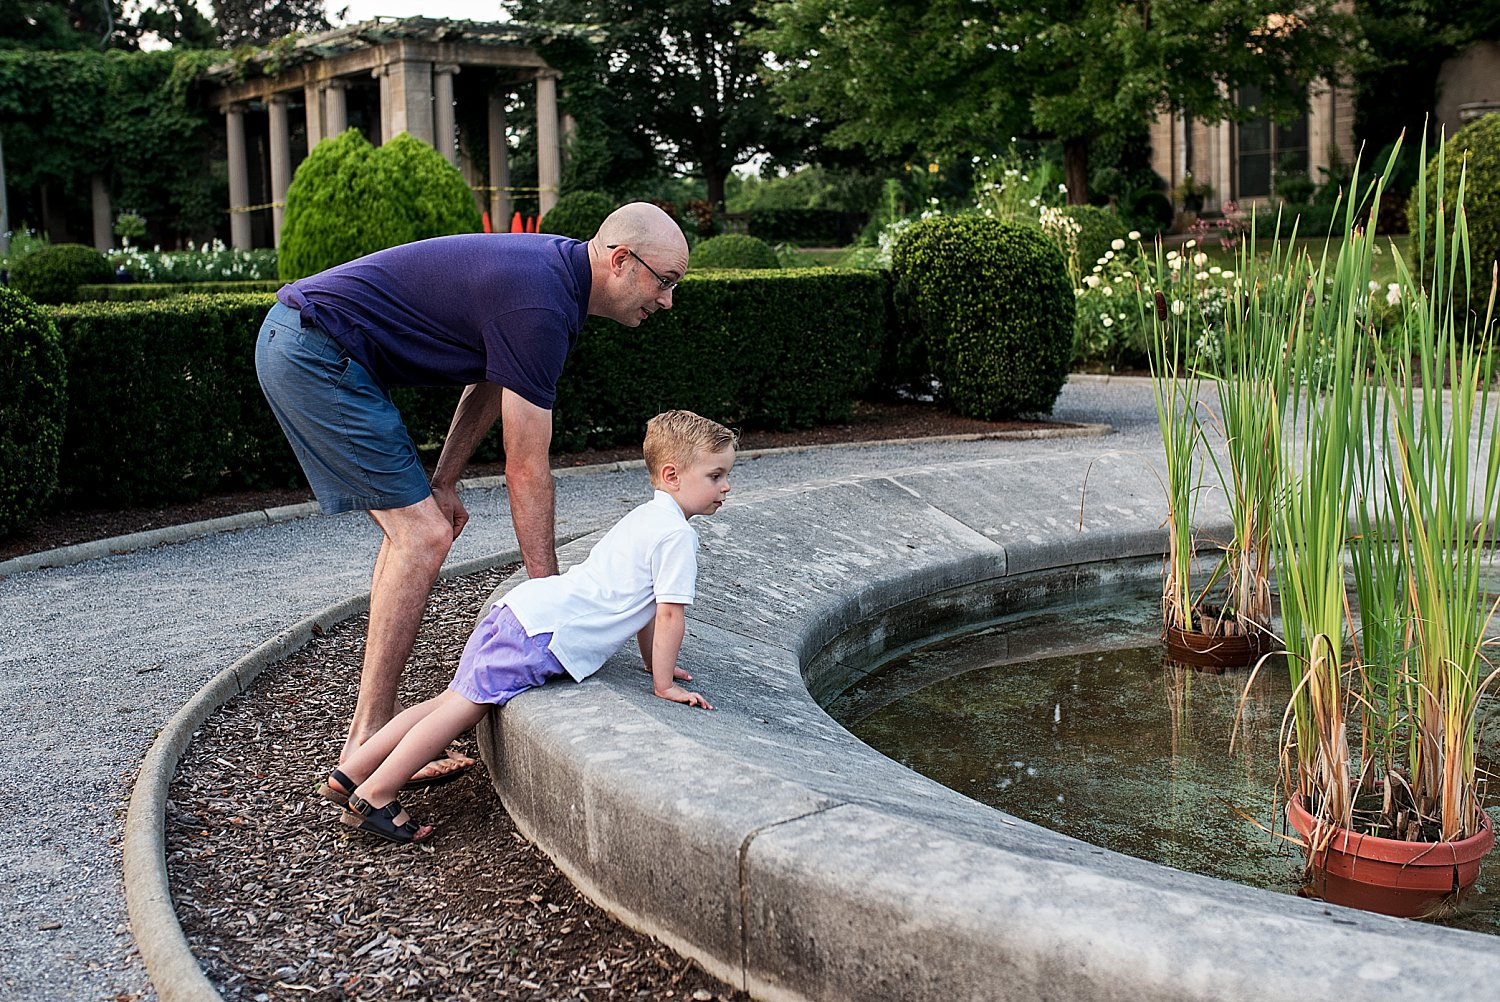 Father and son looking at pond during CT family photography